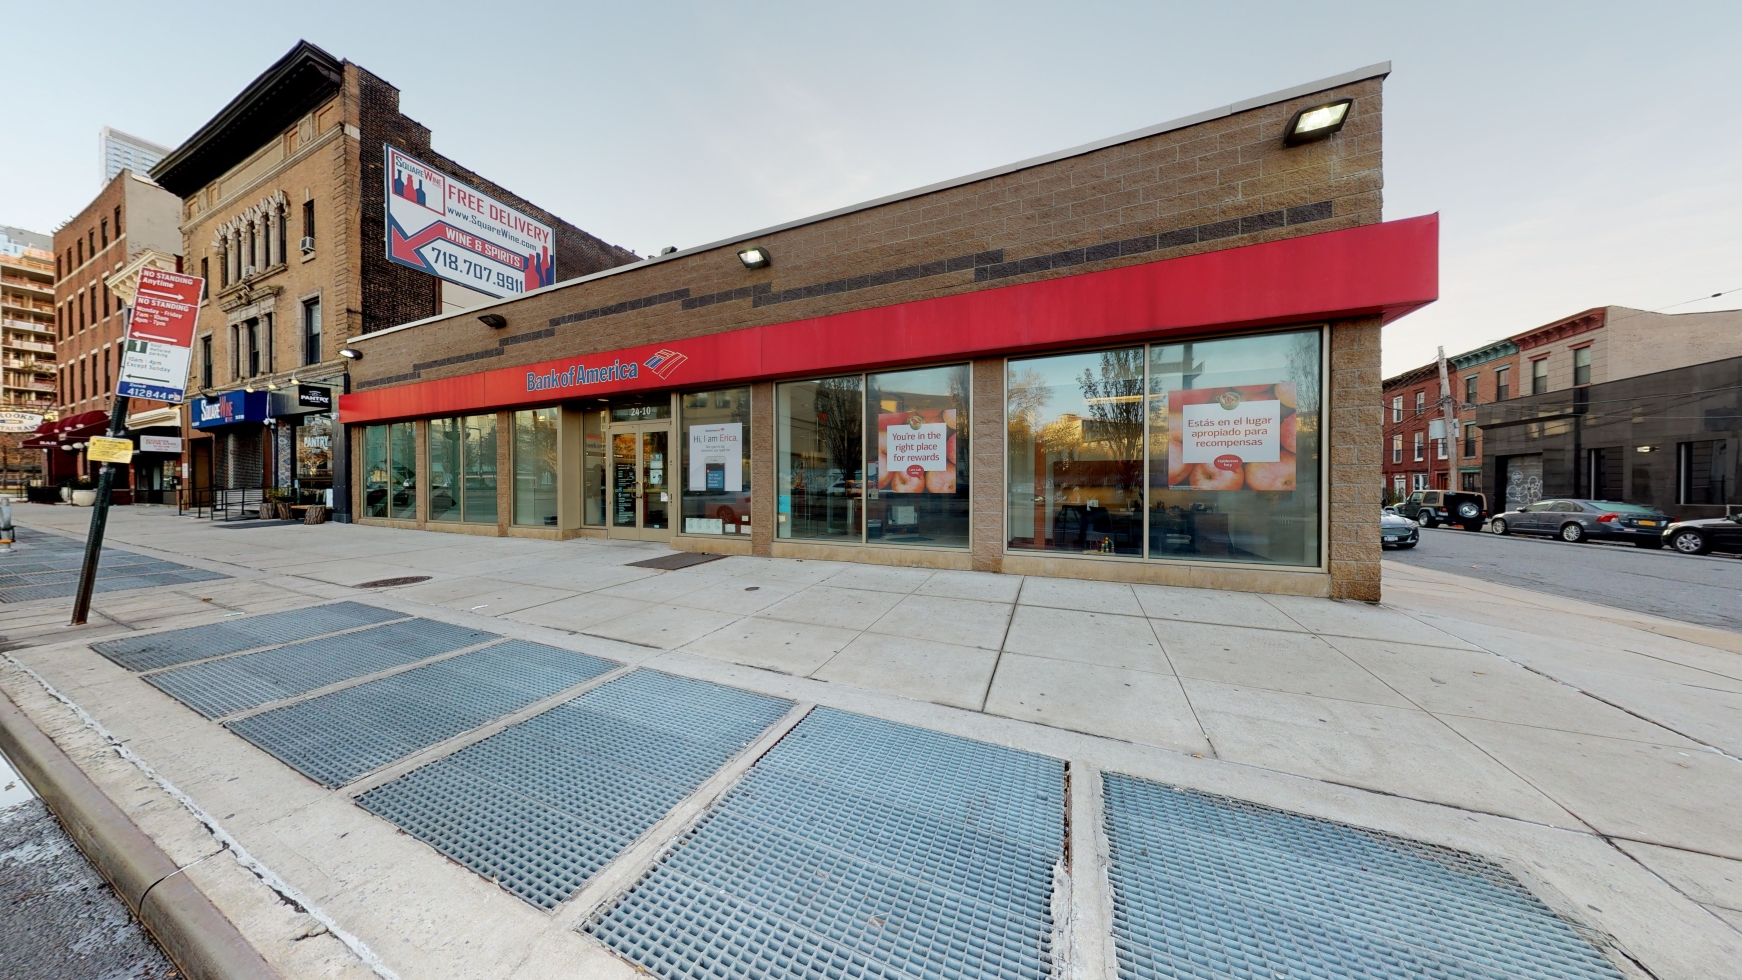 Bank of America financial center with walk-up ATM   2410 Jackson Ave, Long Island City, NY 11101